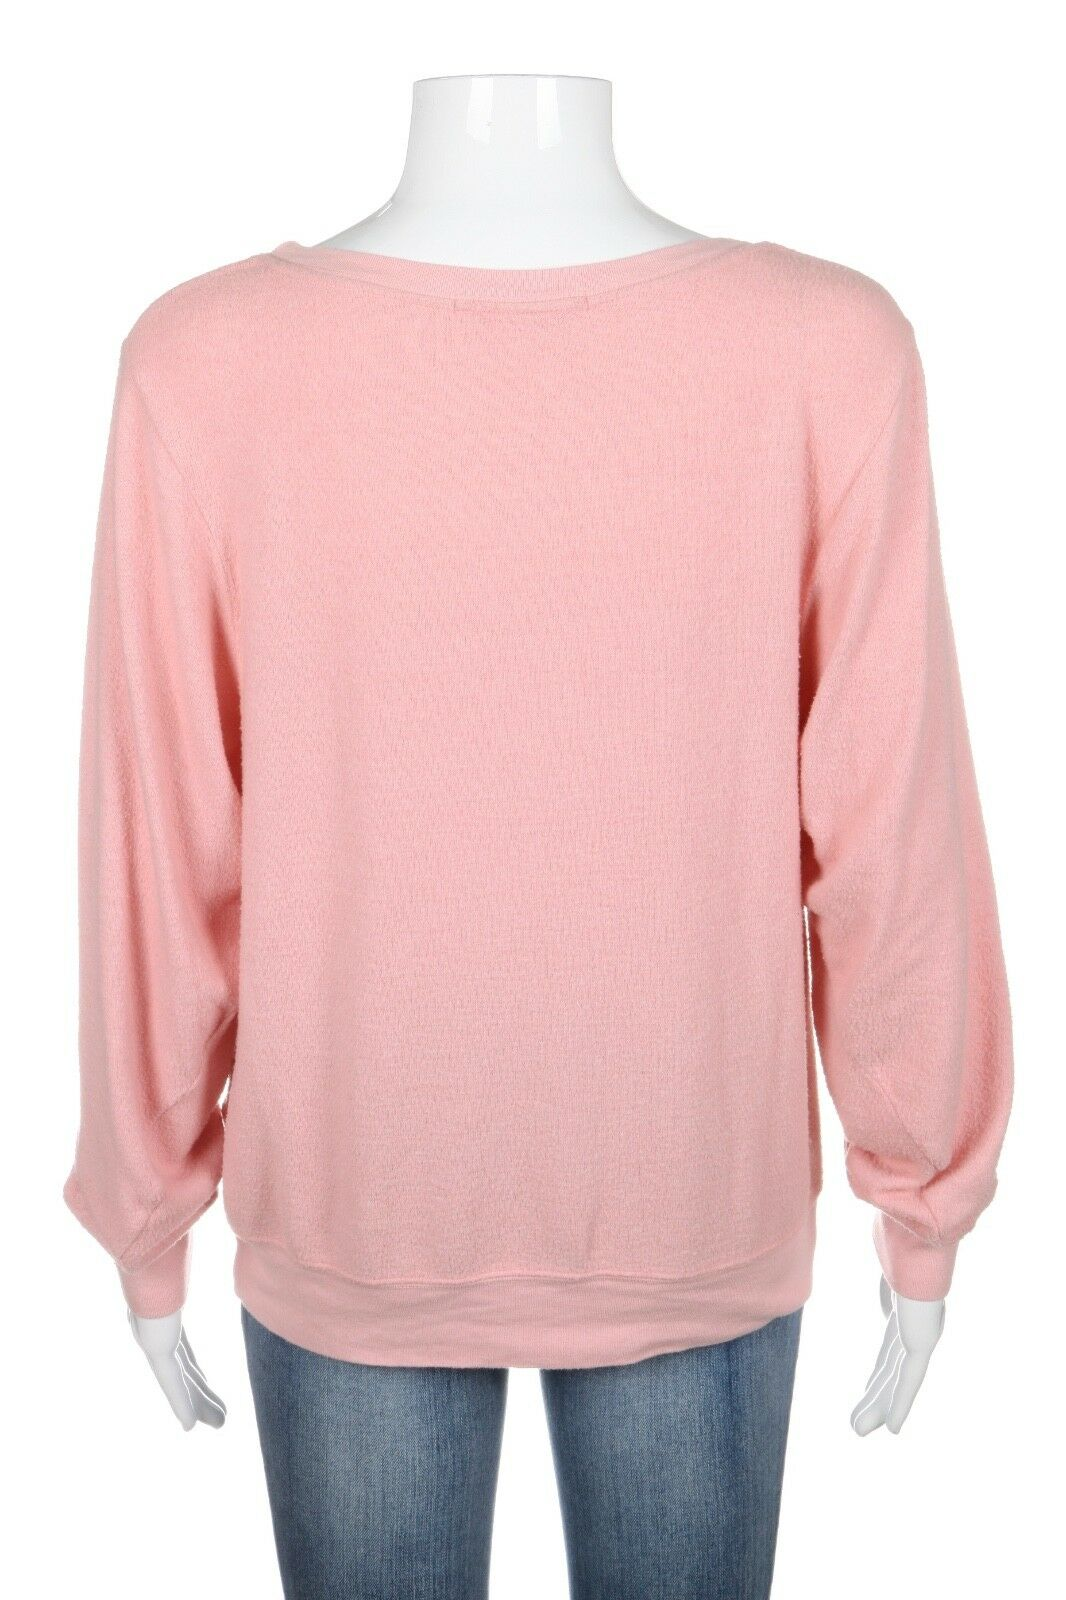 WILDFOX Sweater XS Sweatshirt Pink Soft Don't Don't Don't Sleep Just Dream Jumper Statement f8a11c